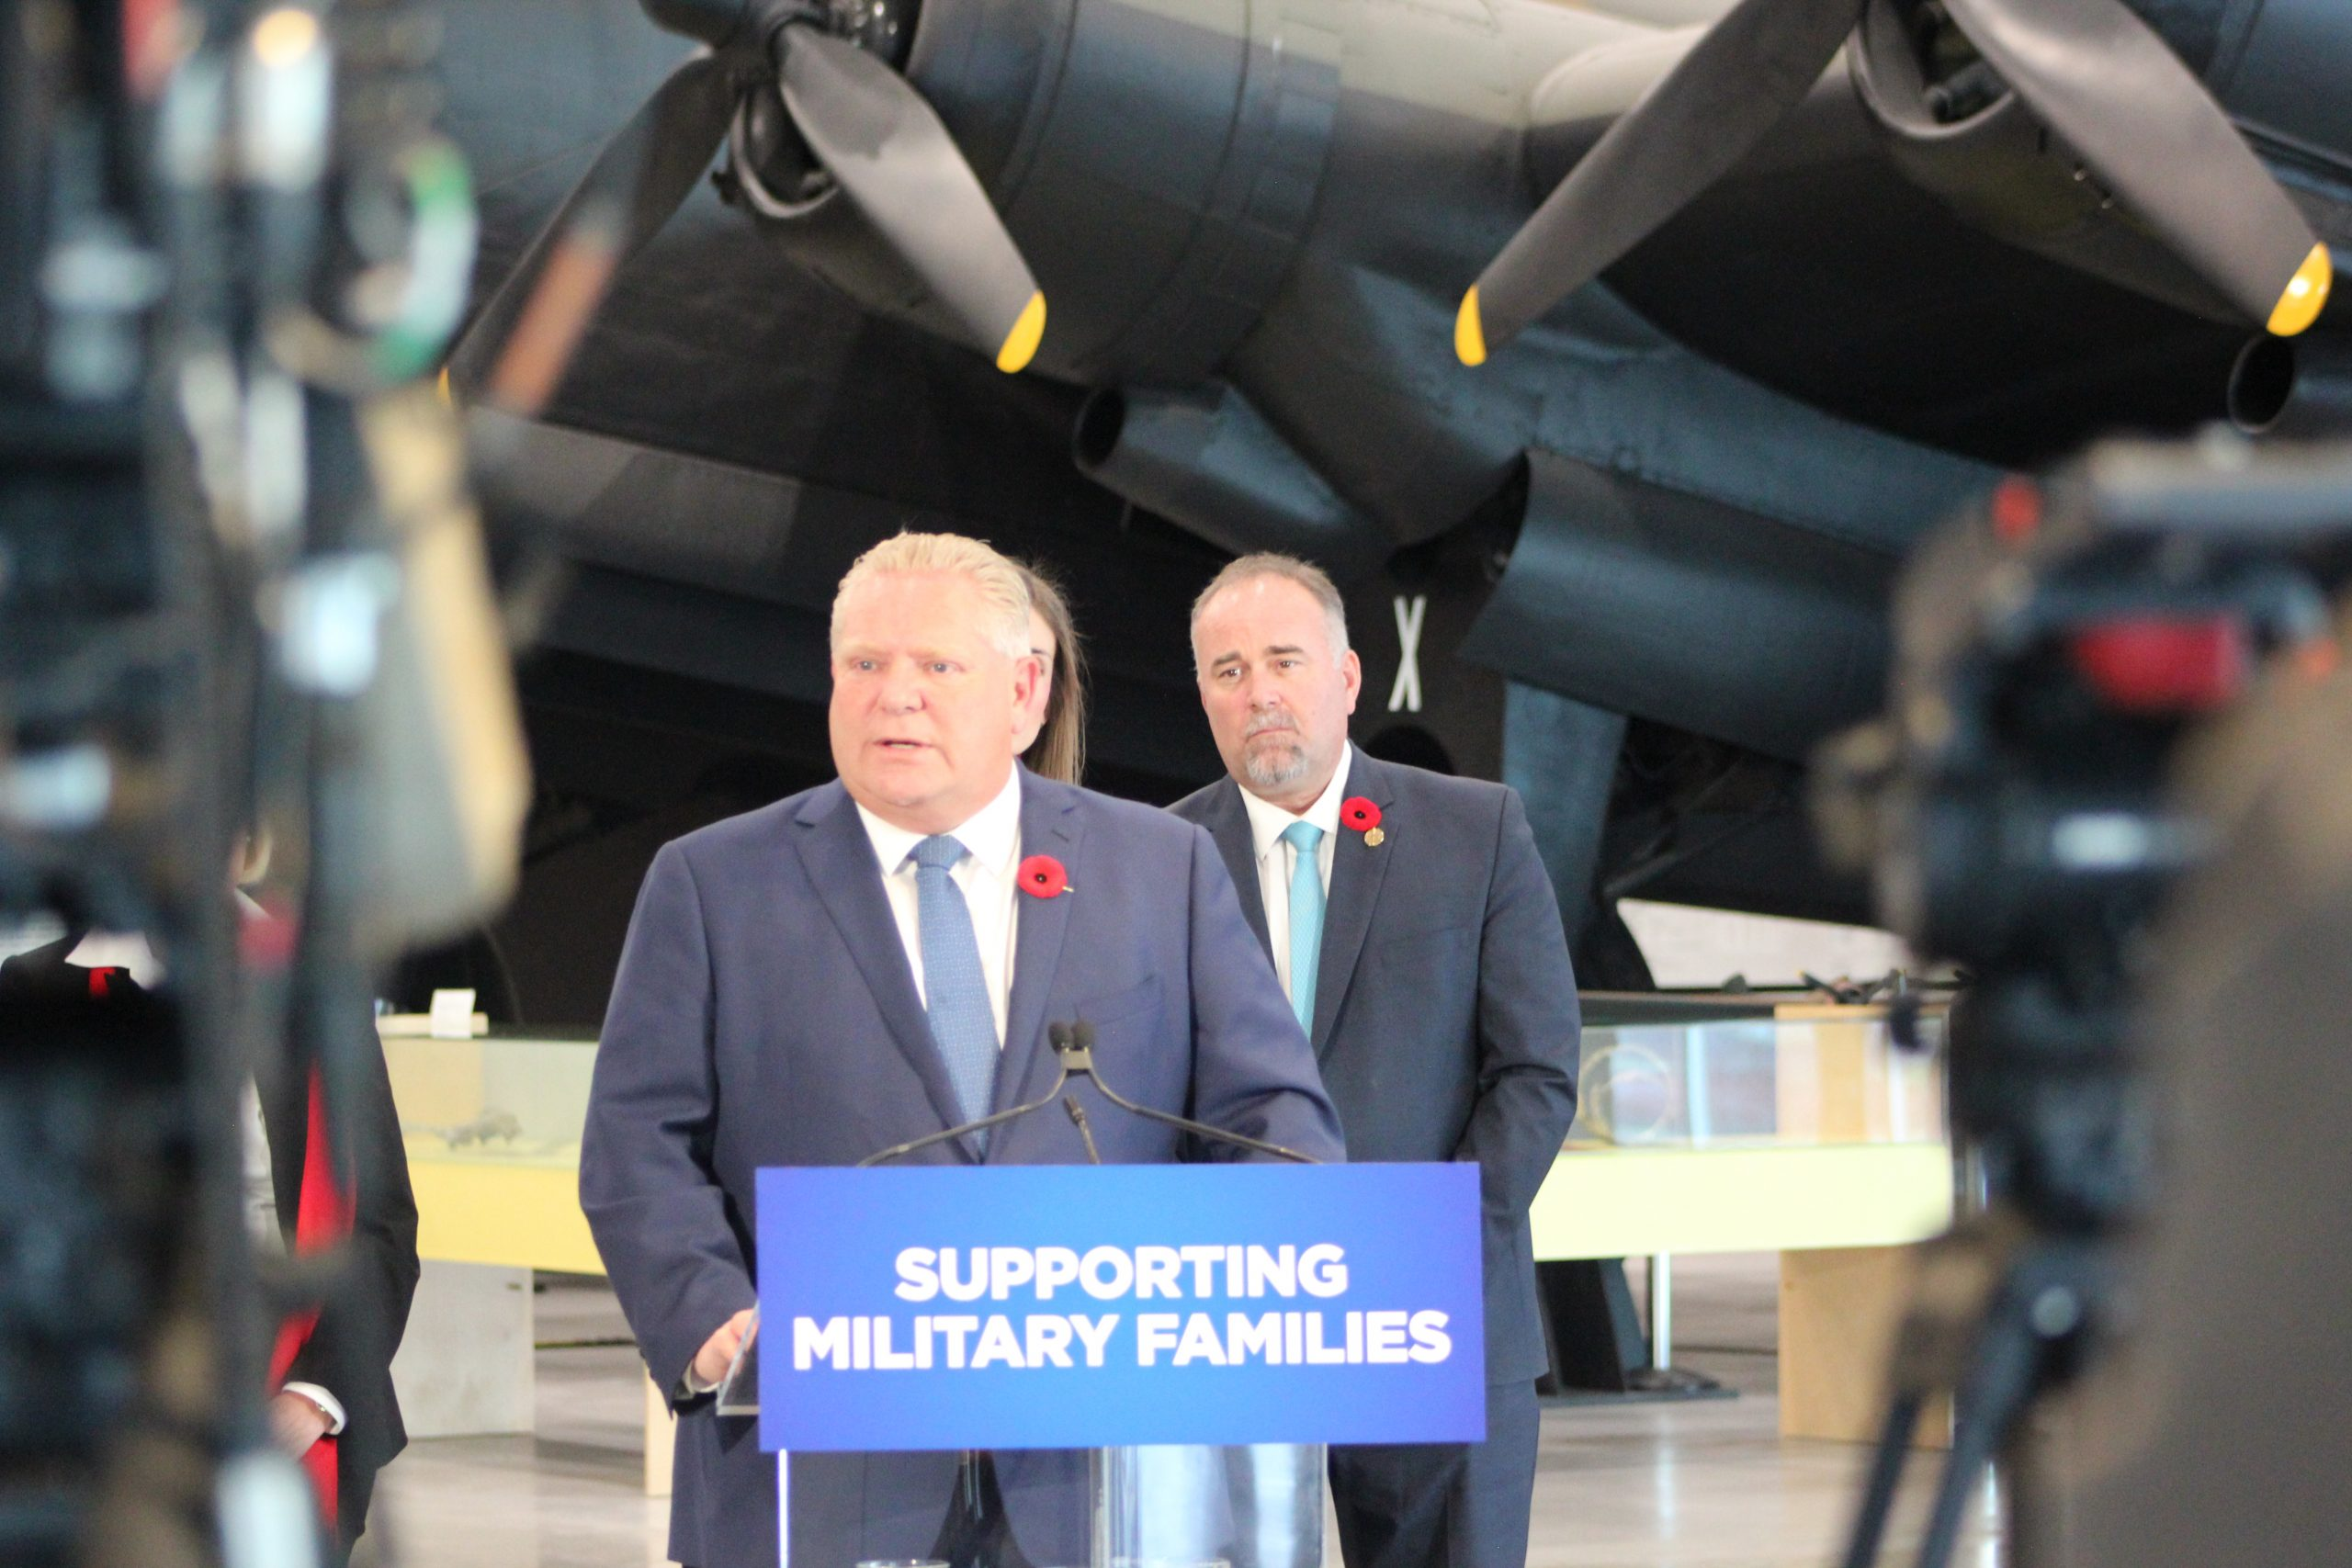 Ford makes military family hotline announcement at CFB Trenton